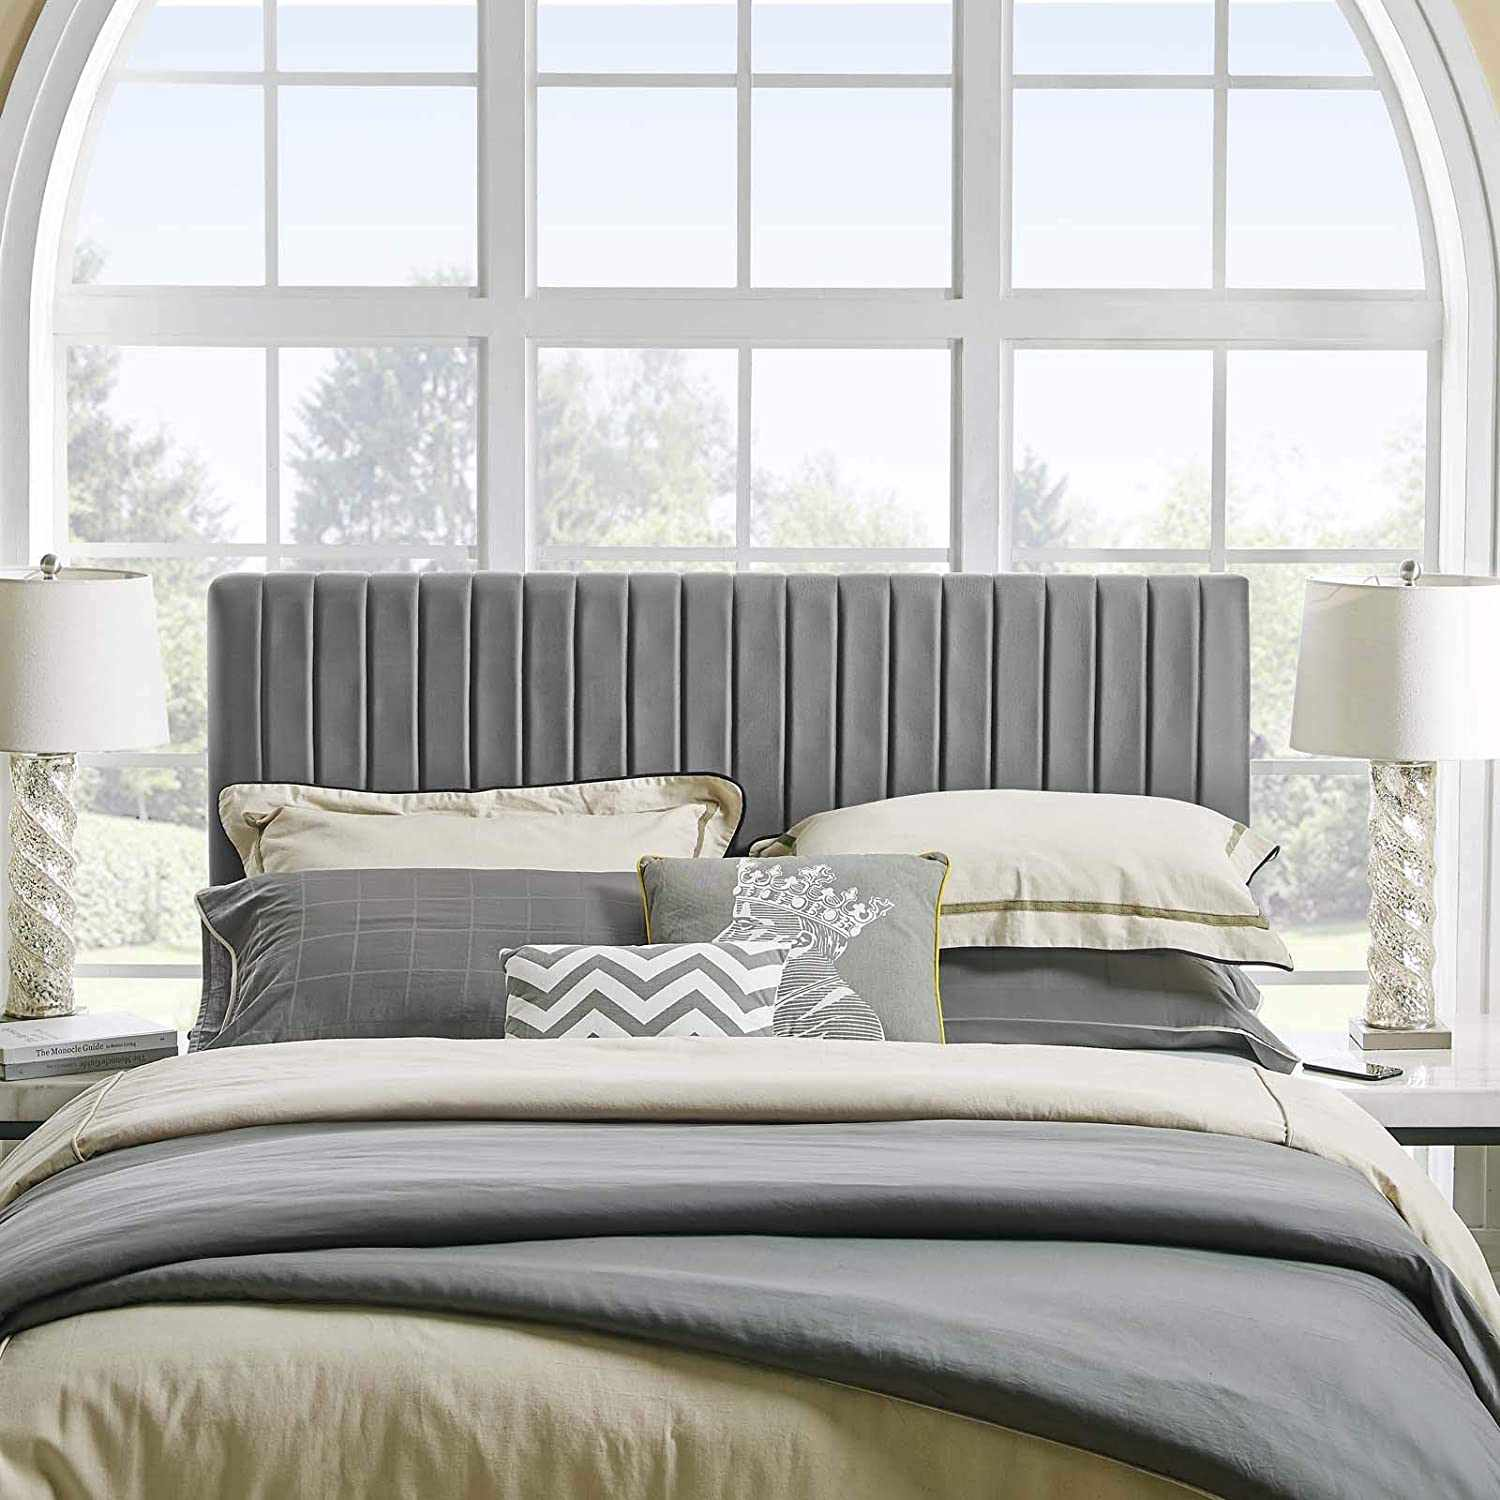 Keira Channel Tufted Upholstered Headboard